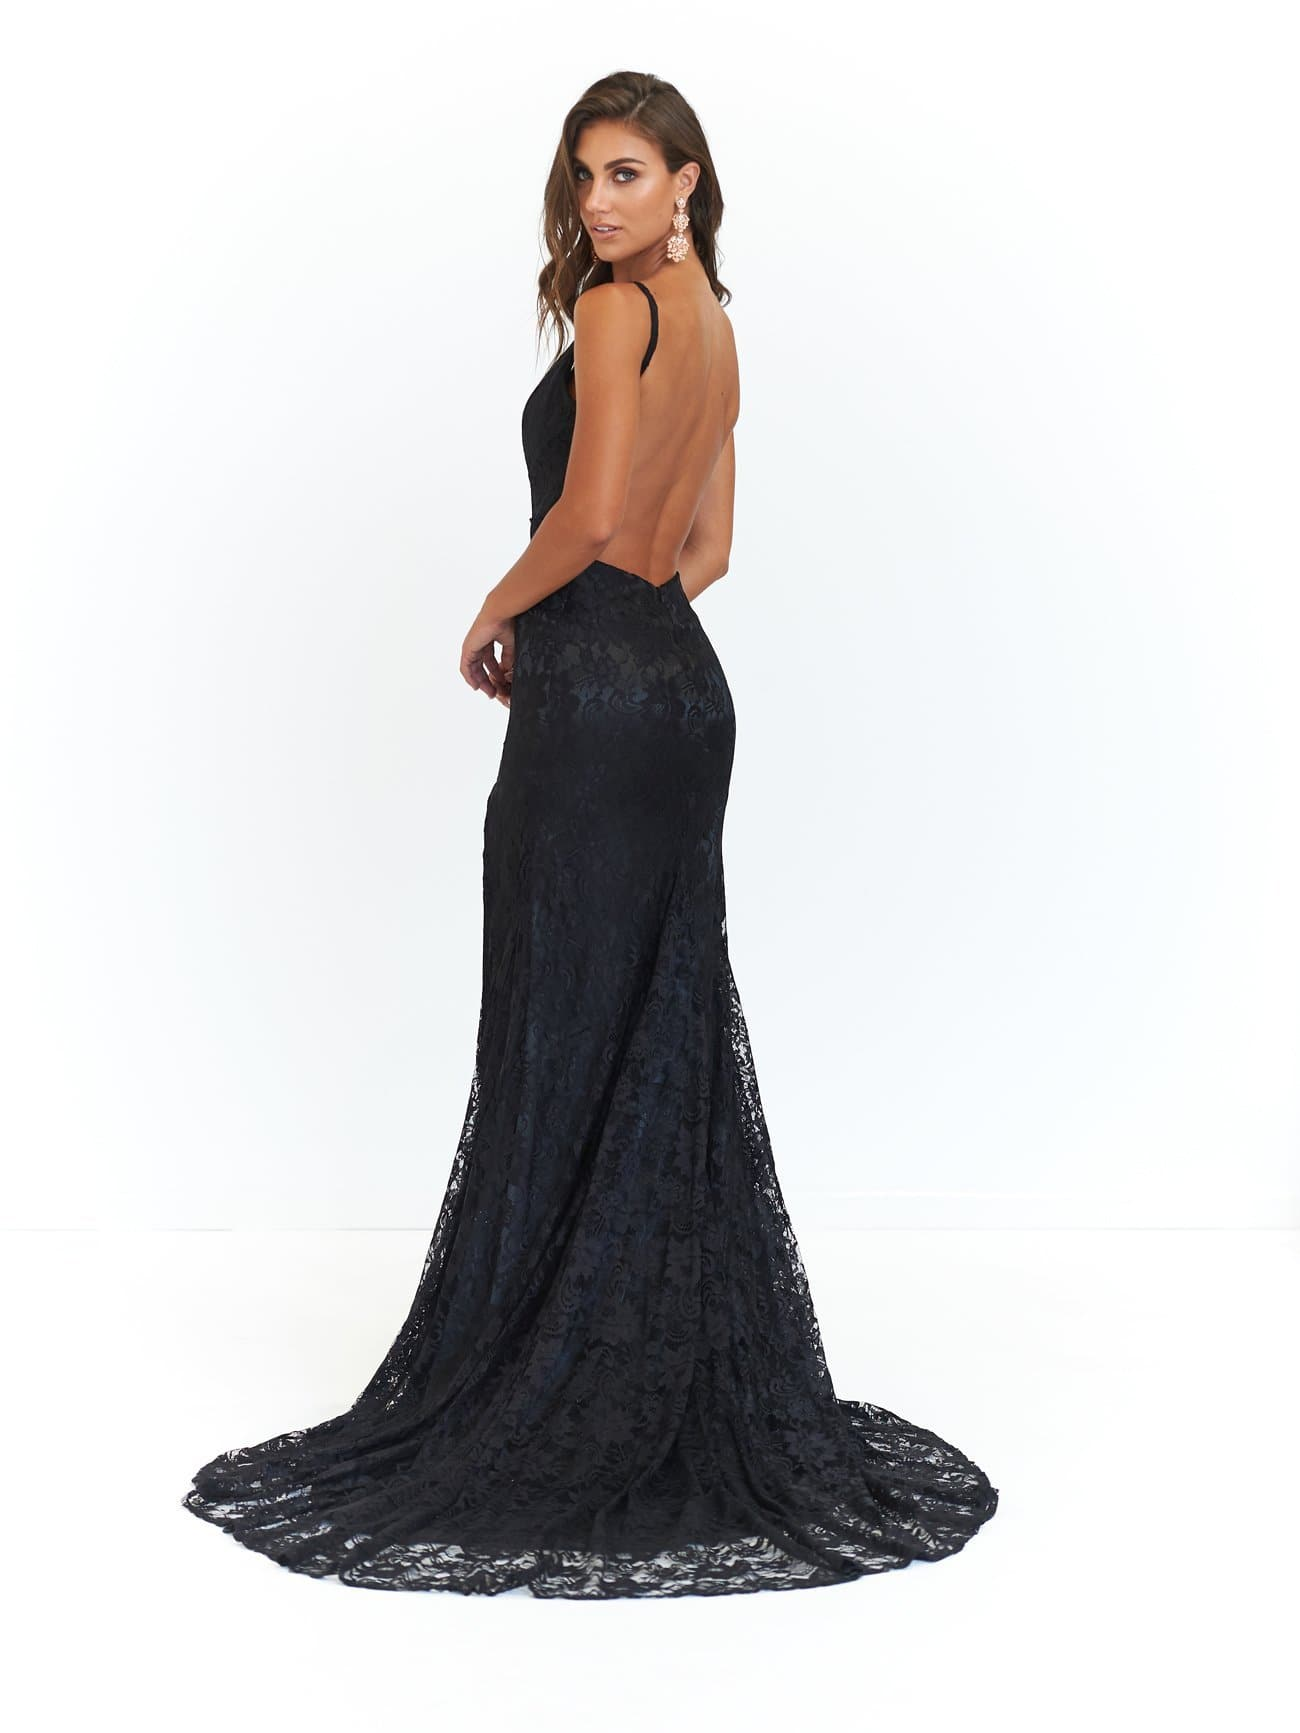 A&N Ayla - Black Lace V Neck Gown with Mermaid Train and Front Split